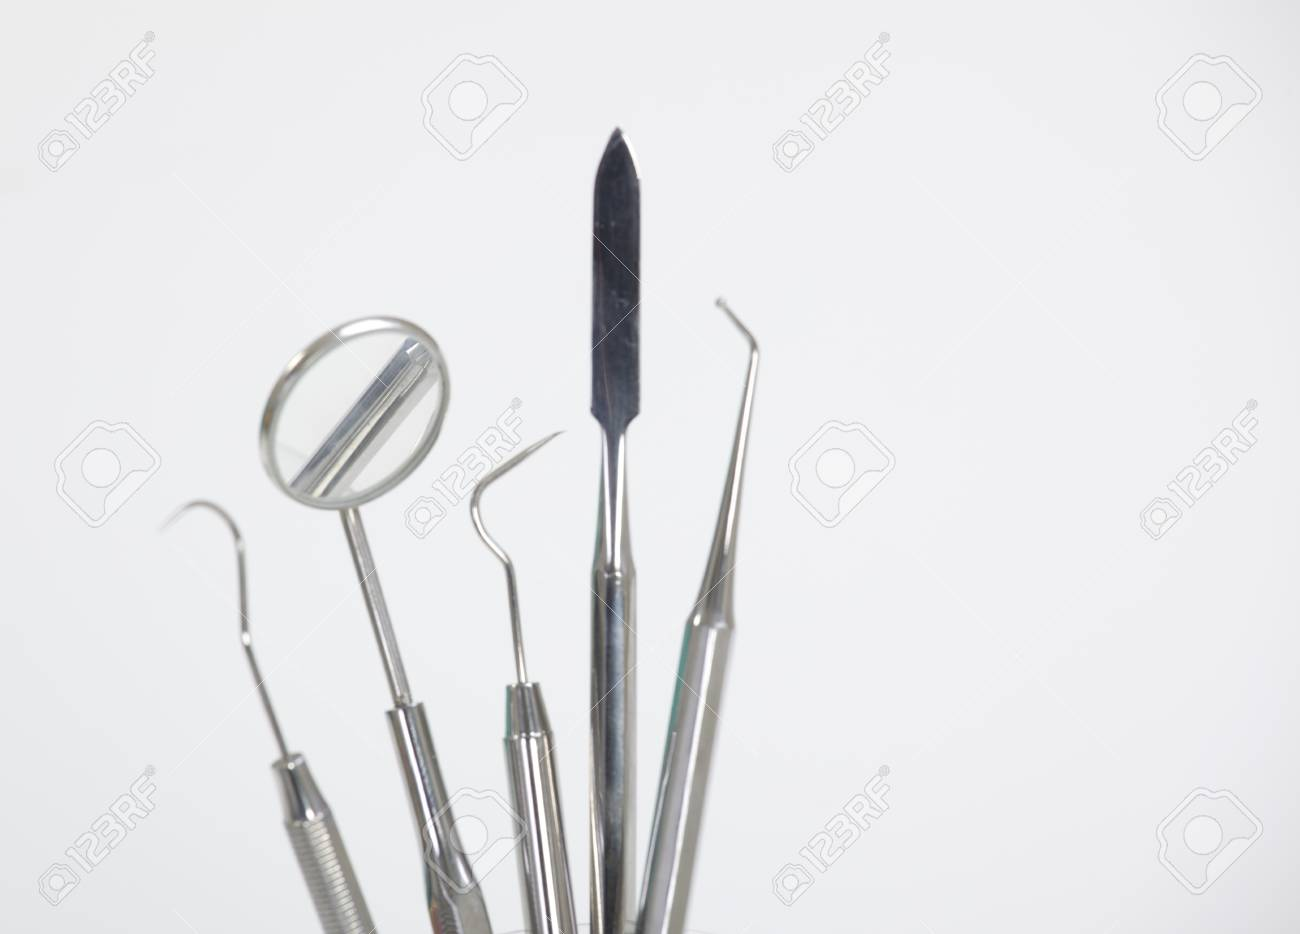 Set of metal medical equipment tools for teeth dental care Stock Photo - 19656314